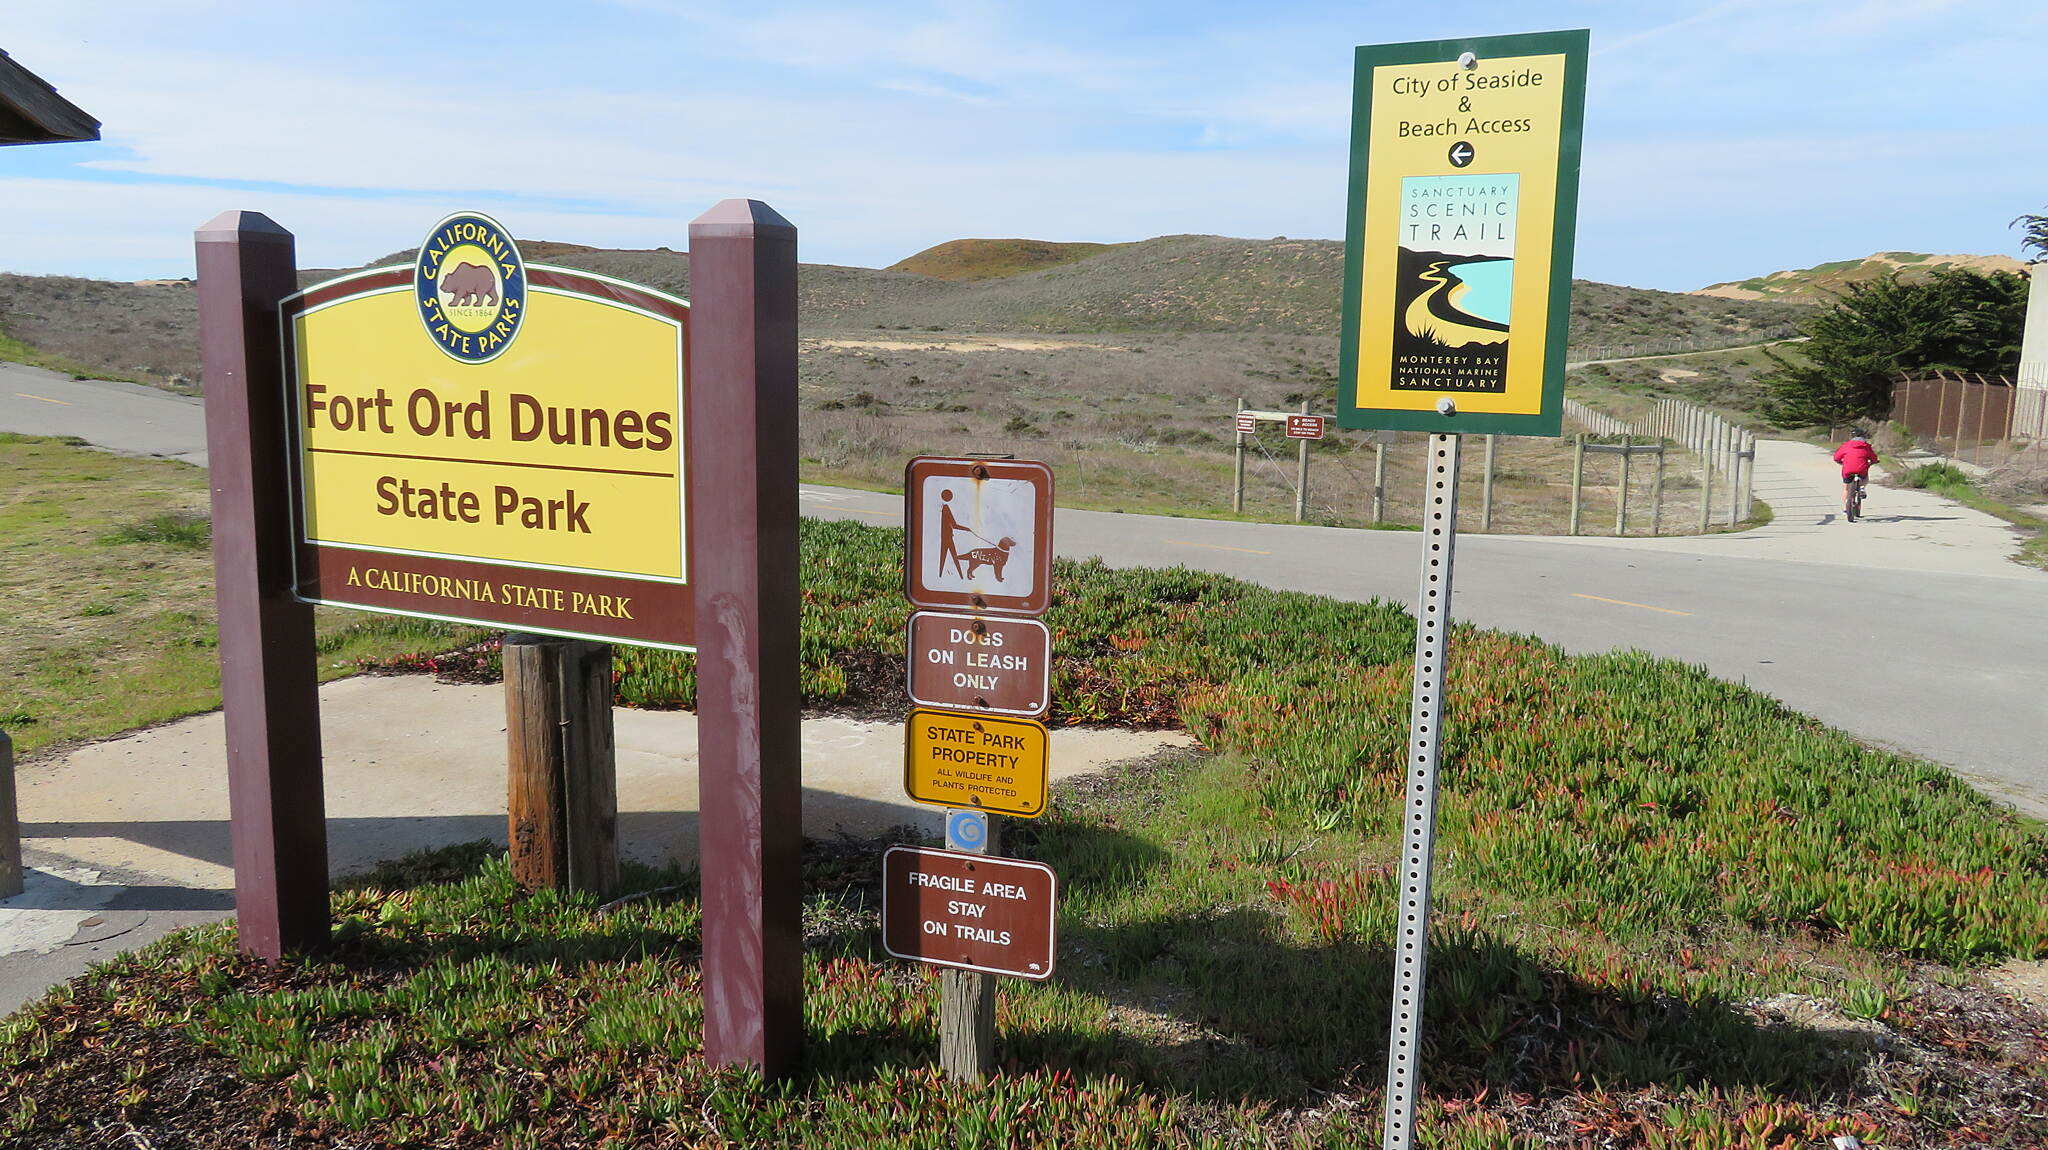 Beach Range Road Multi-Use Trail Fort Ord Dunes SP Sign Sign at North end.